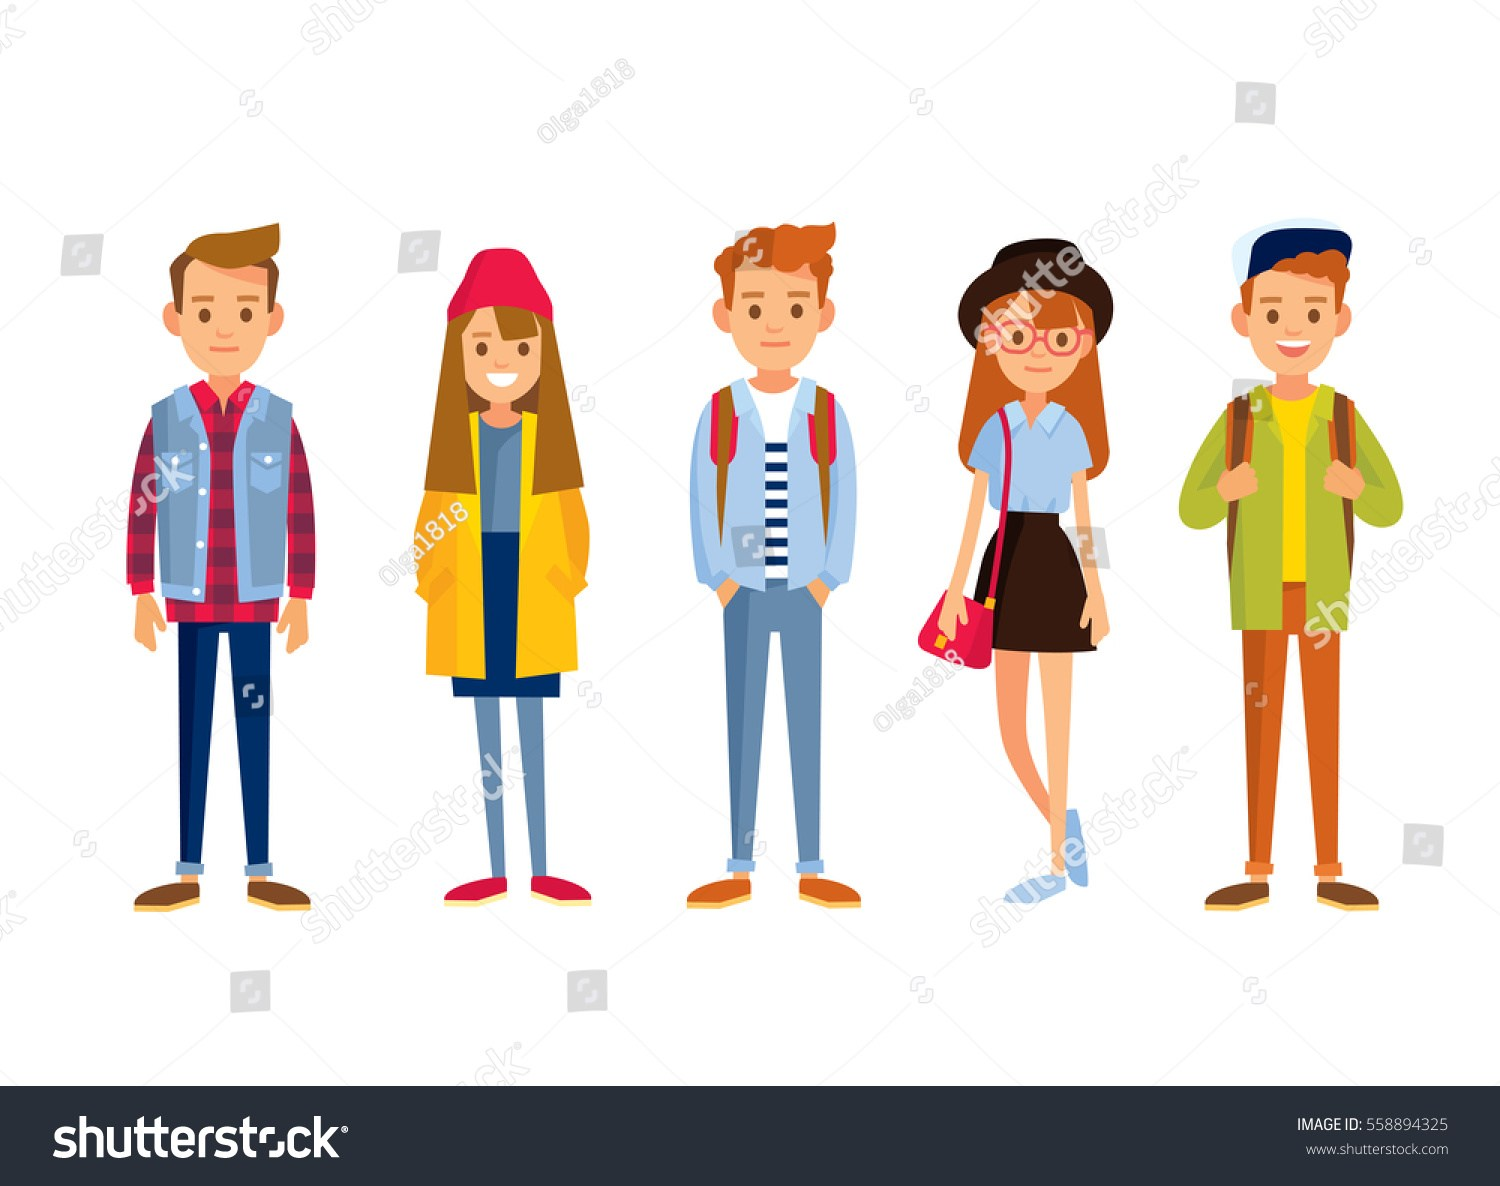 Young people clipart 6 » Clipart Portal.